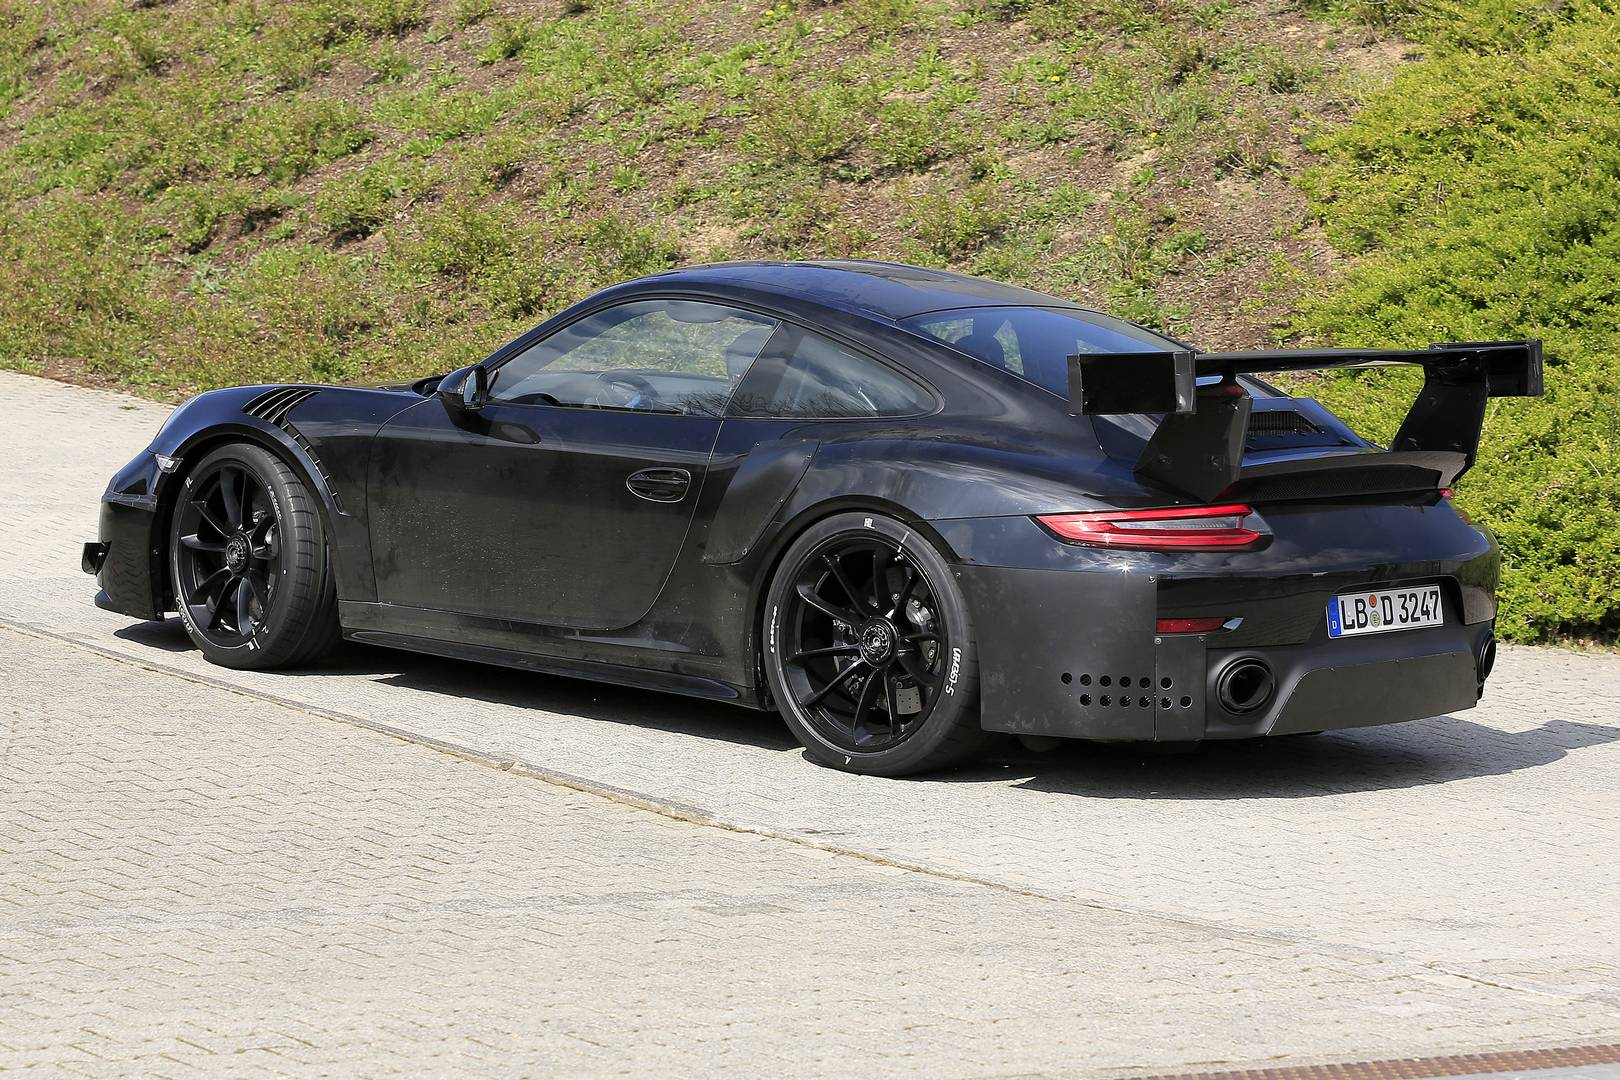 2018 porsche 911 gt2 rs spy shots at the nurburgring. Black Bedroom Furniture Sets. Home Design Ideas